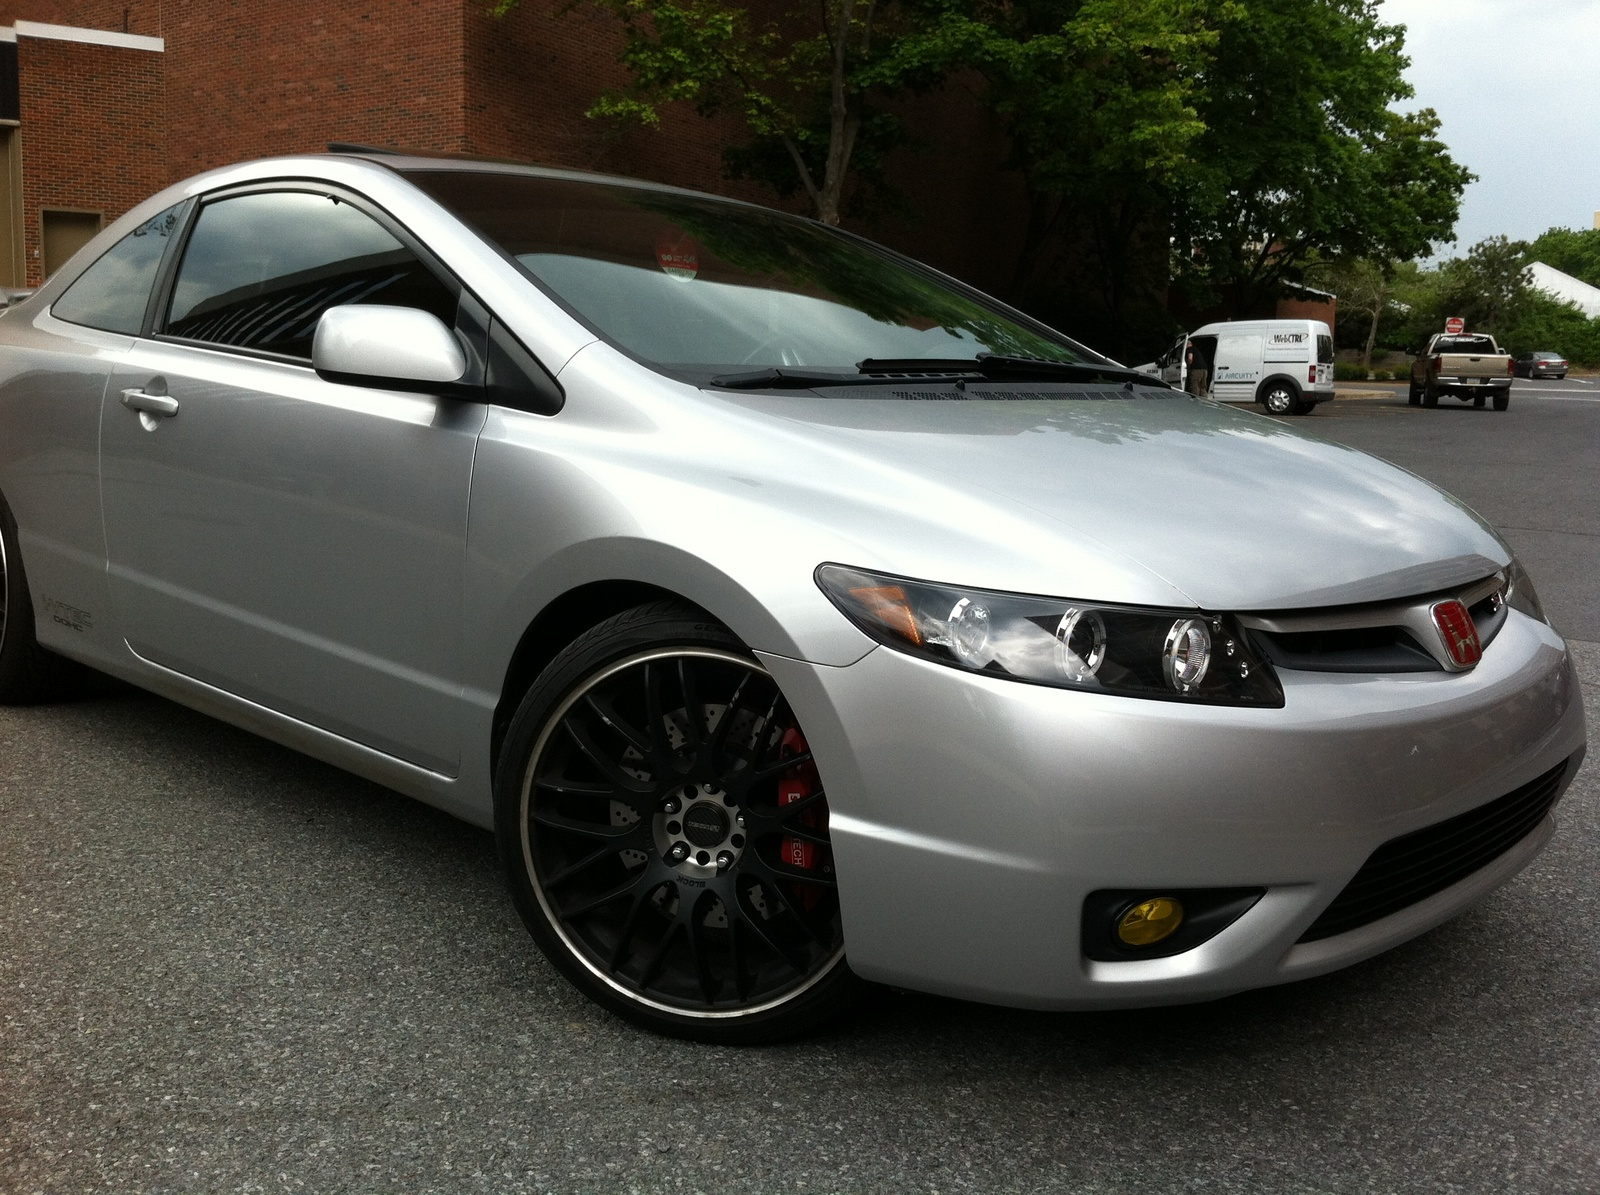 2008 Honda Accord Tires 2007 Honda Civic Coupe - Pictures - CarGurus